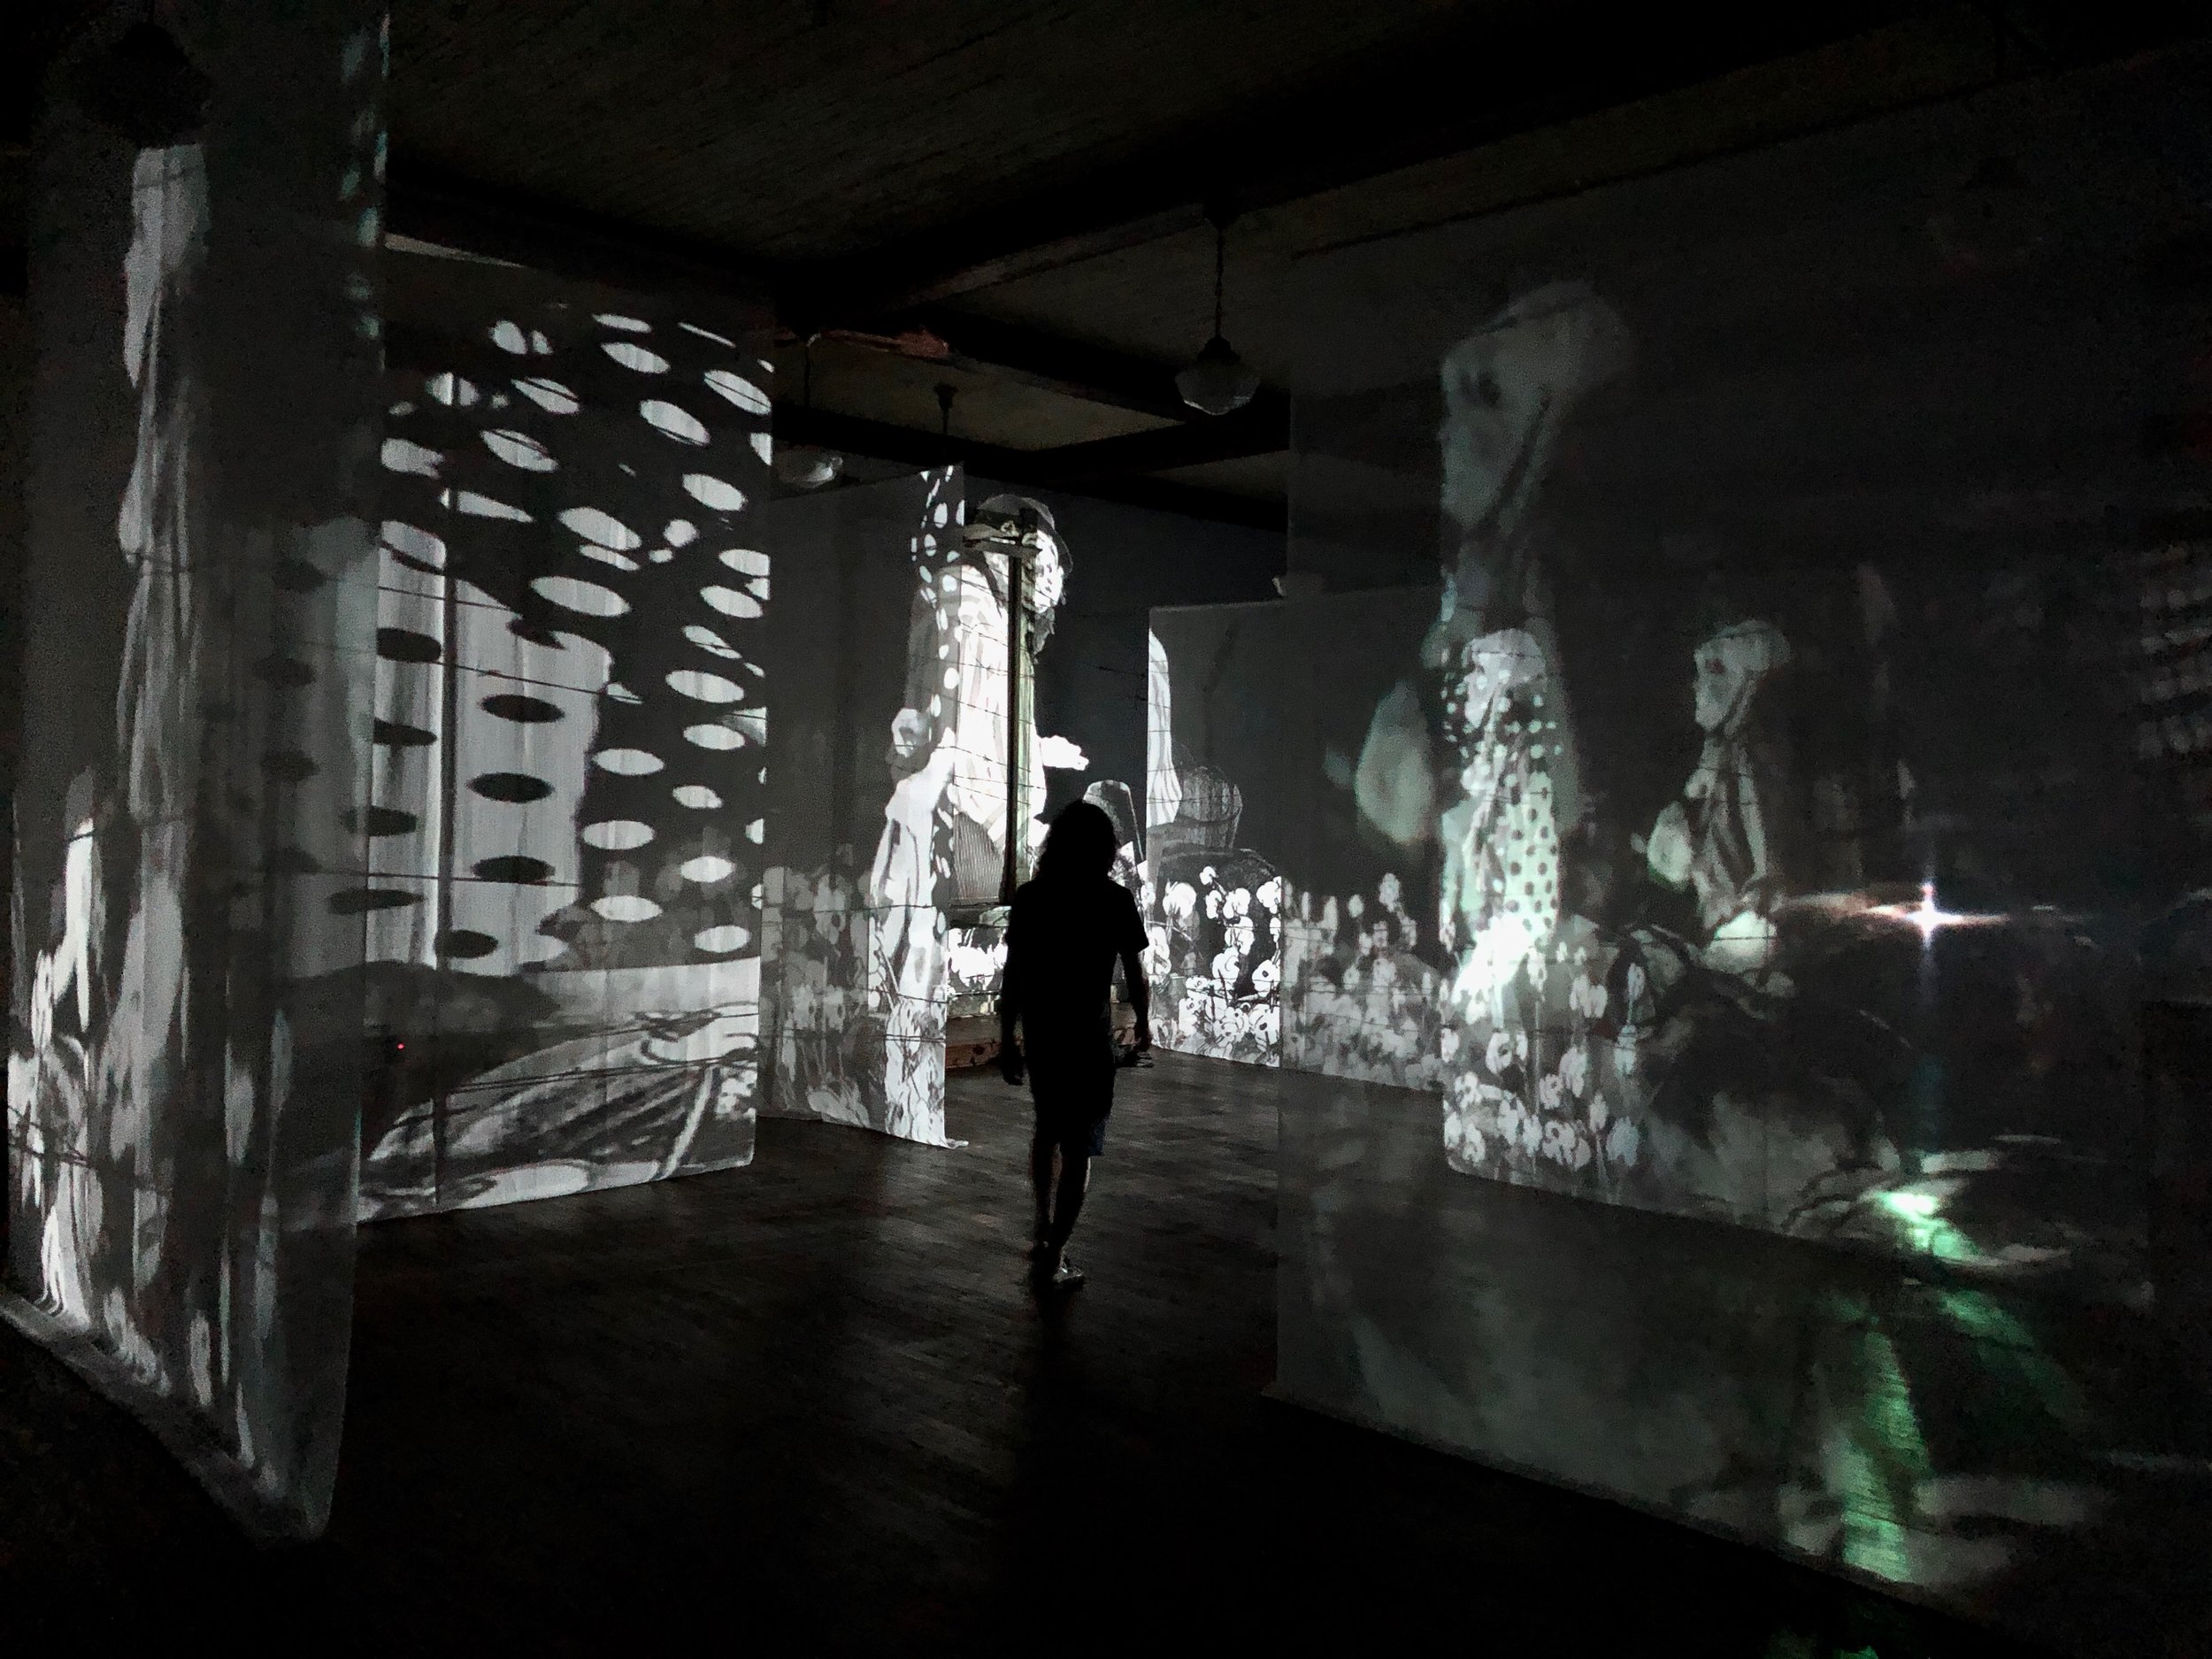 Edison Peñafiel's 3rd floor residency work,  Land Escape,  within  Reenactments of a Perpetual Cycle